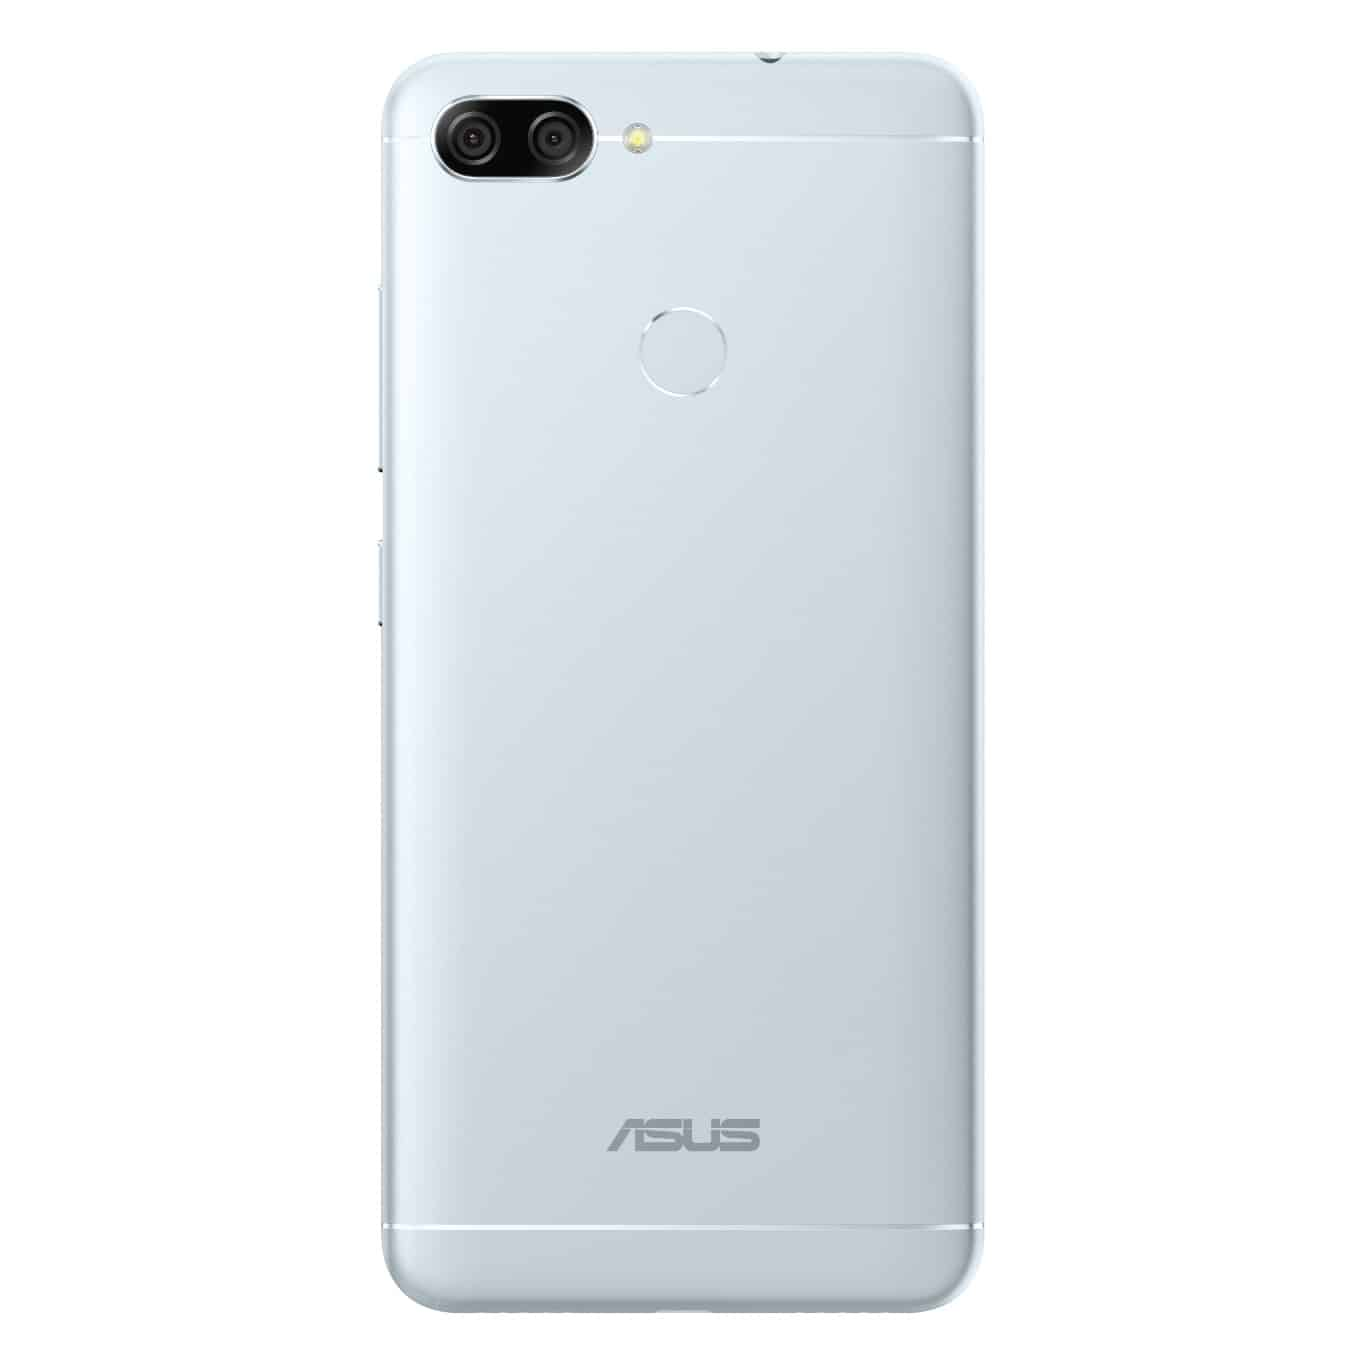 ASUS ZenFone Max Plus M1 official image 2